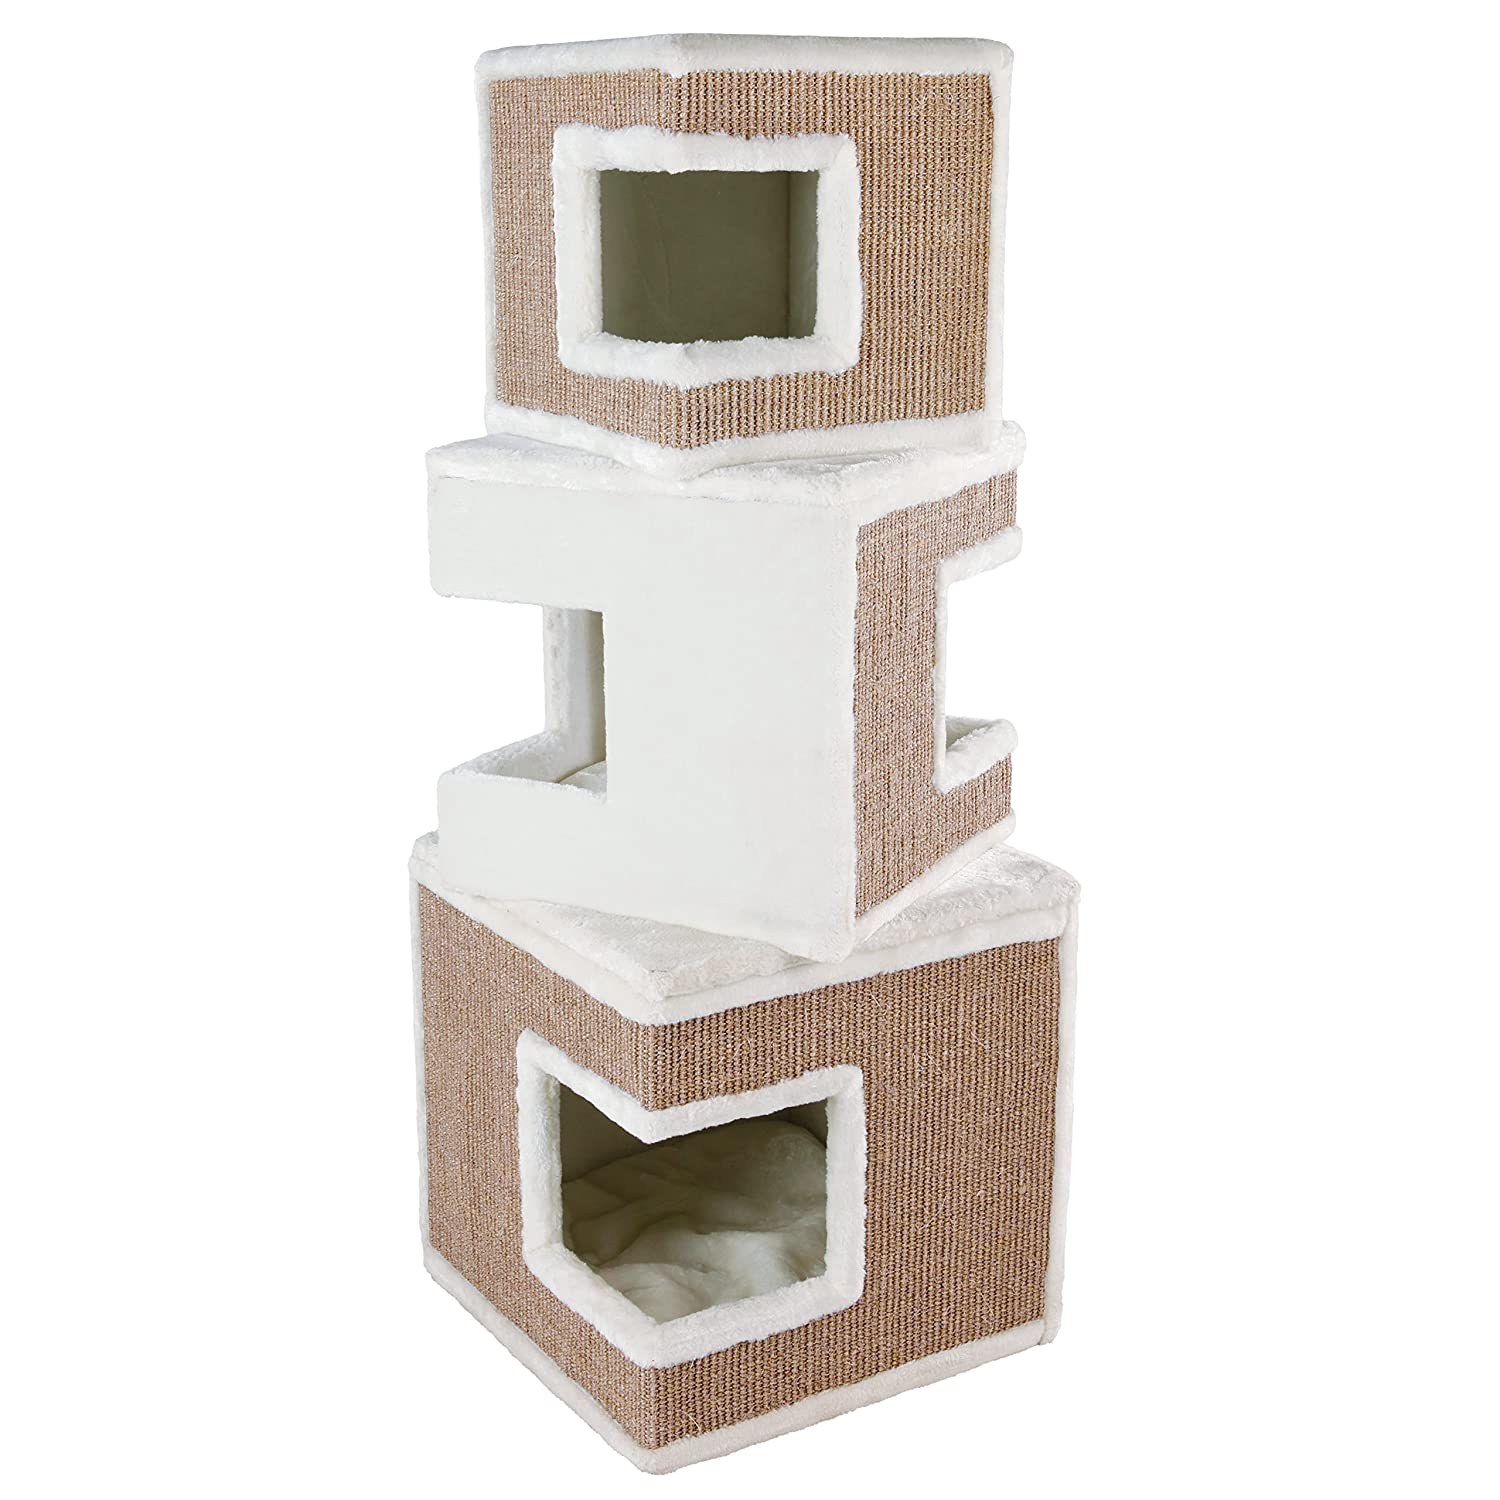 Creme   brown Trixie Pet Products 43377 Lilo Modular 3-Story Cat Tower